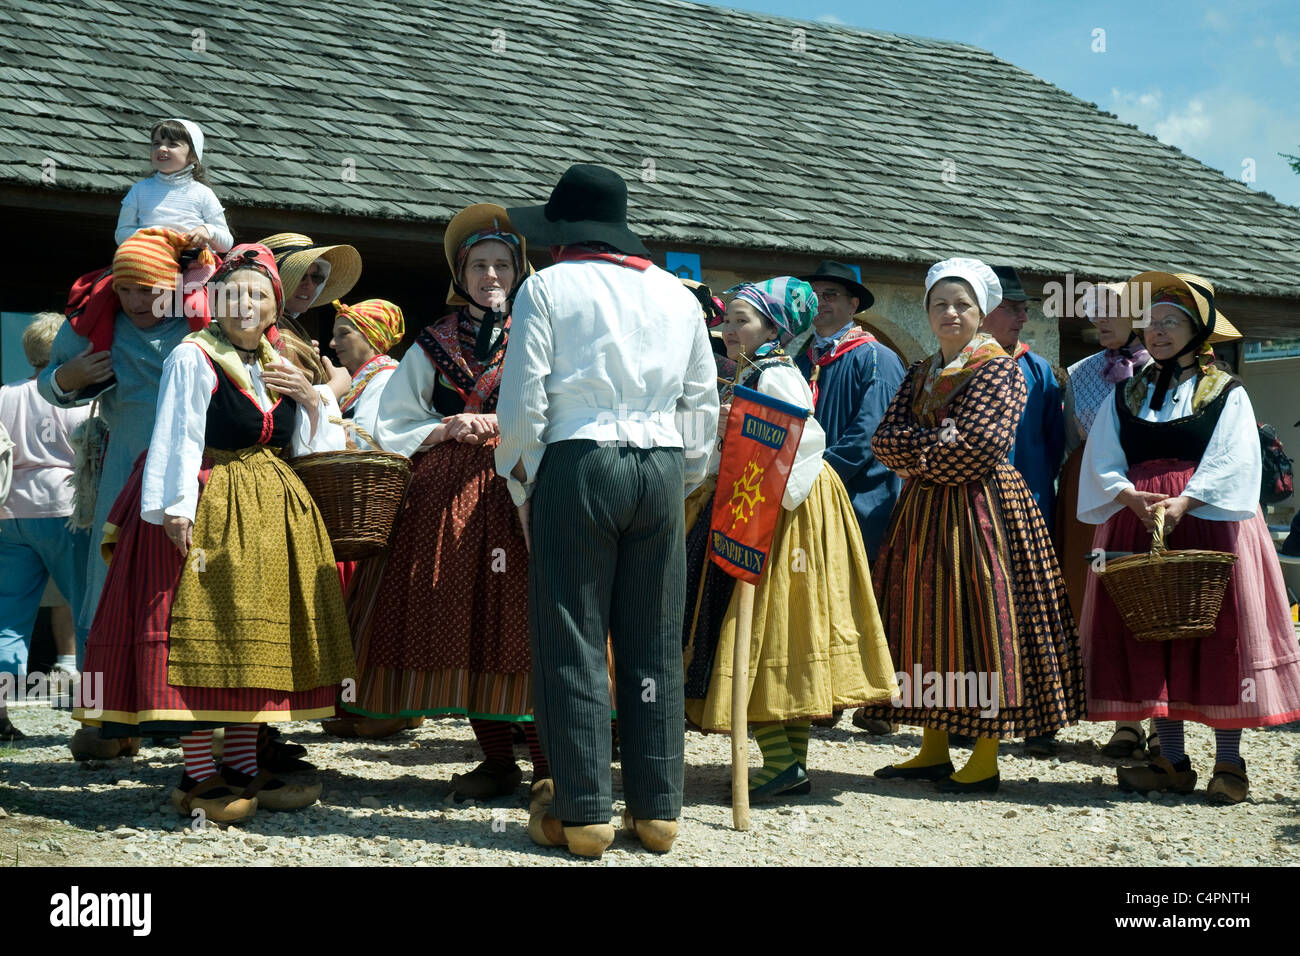 A Lozère folk group in 18th-century bonnets, full skirts and clogs, entertains the crowd at a rural hilltop - Stock Image